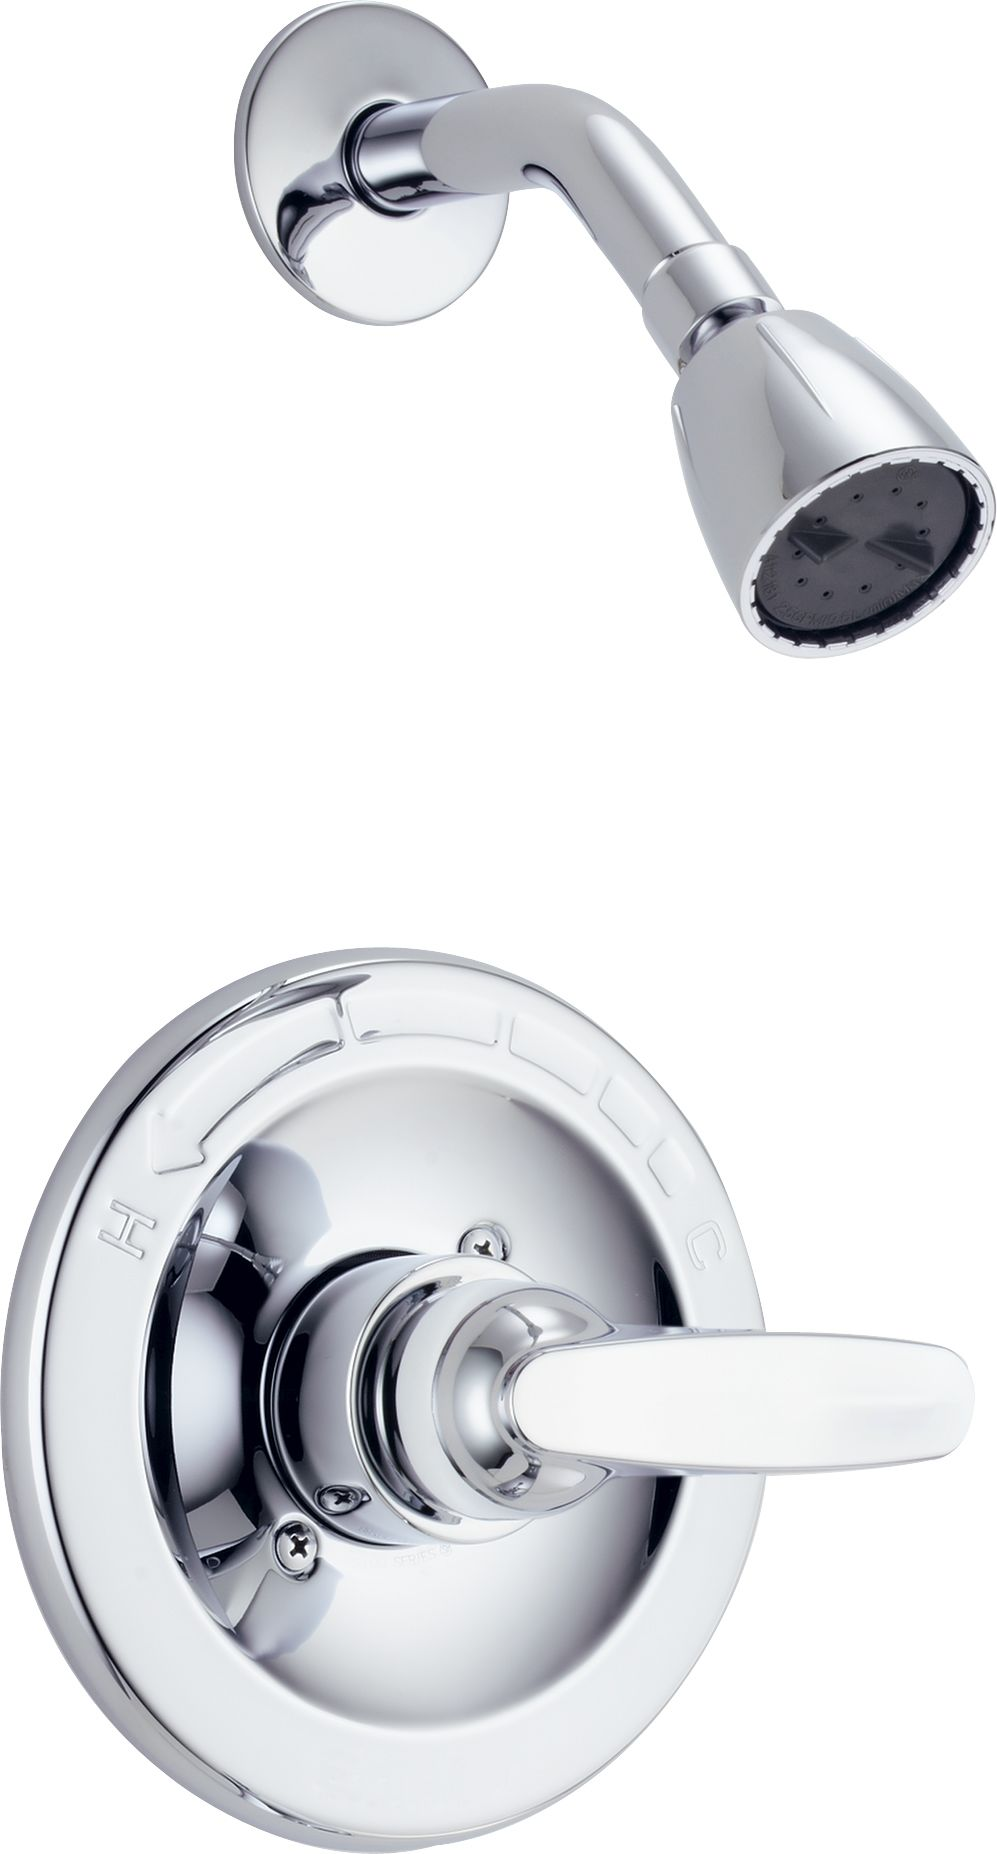 Delta Bt13210 Chrome Foundations Monitor 13 Series Single Function Pressure Balanced Shower Trim Package Less Rough In Valve Faucet